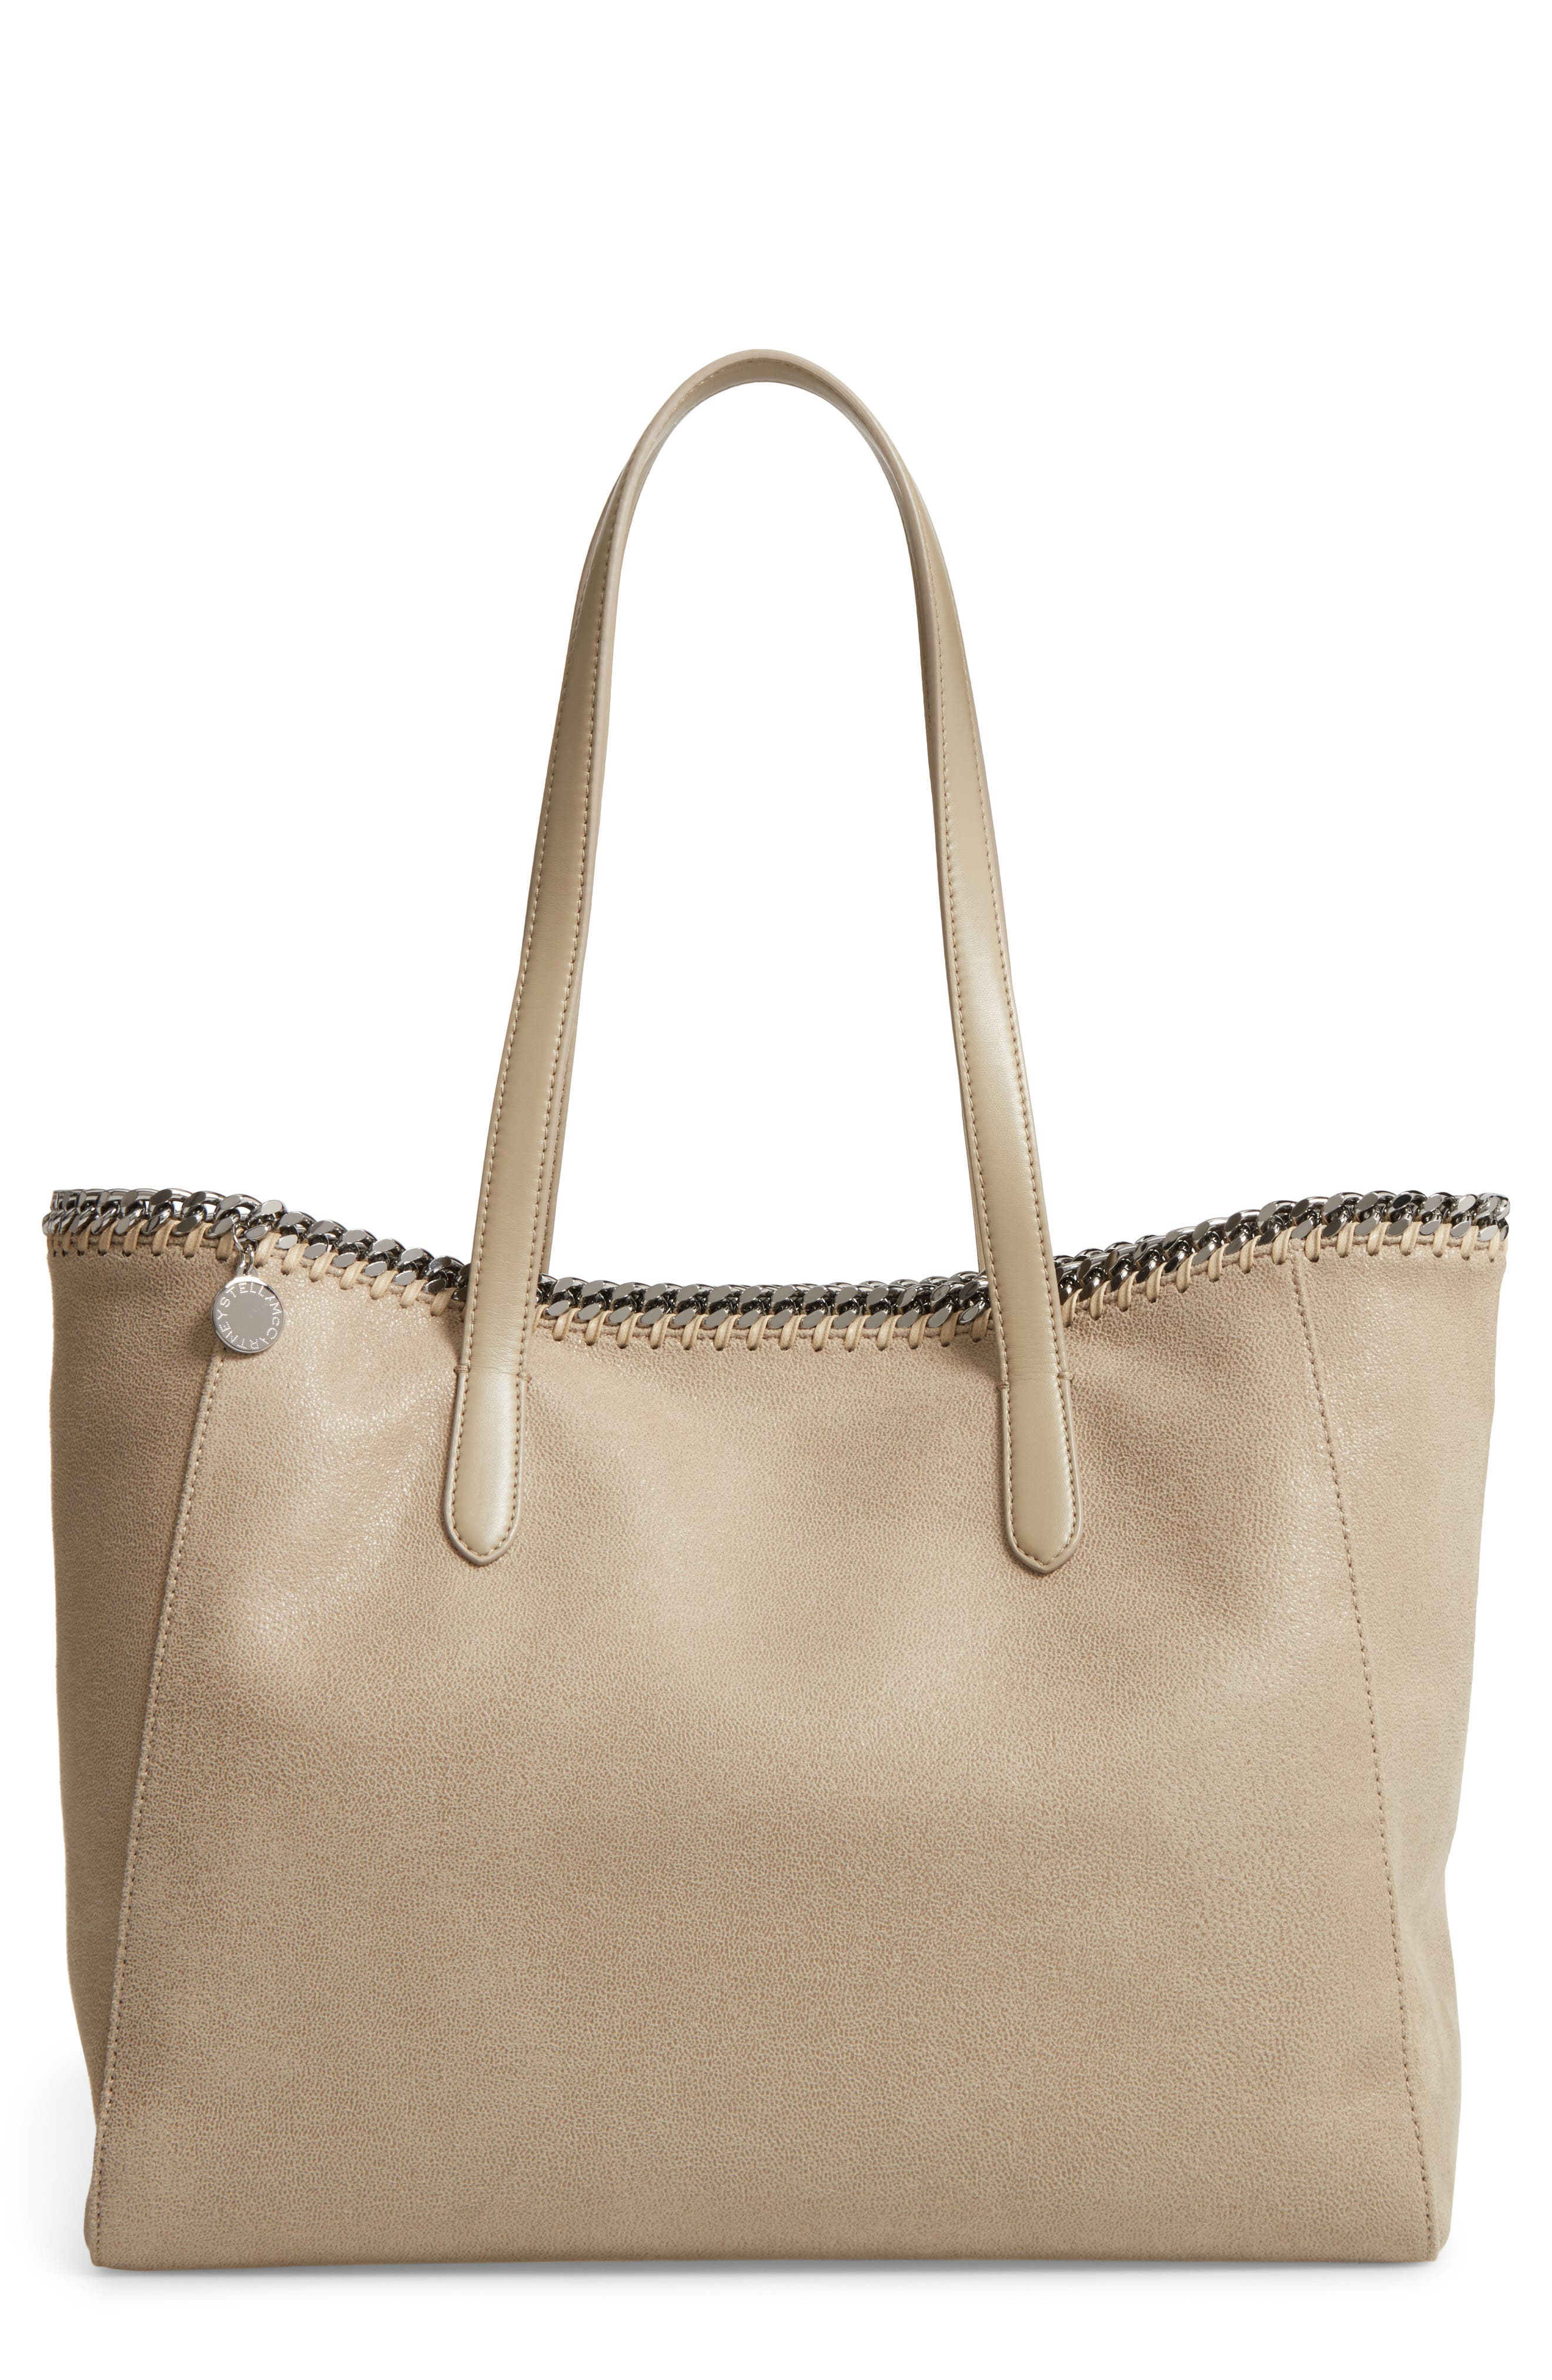 'Falabella - Shaggy Deer' Faux Leather Tote,                             Main thumbnail 3, color,